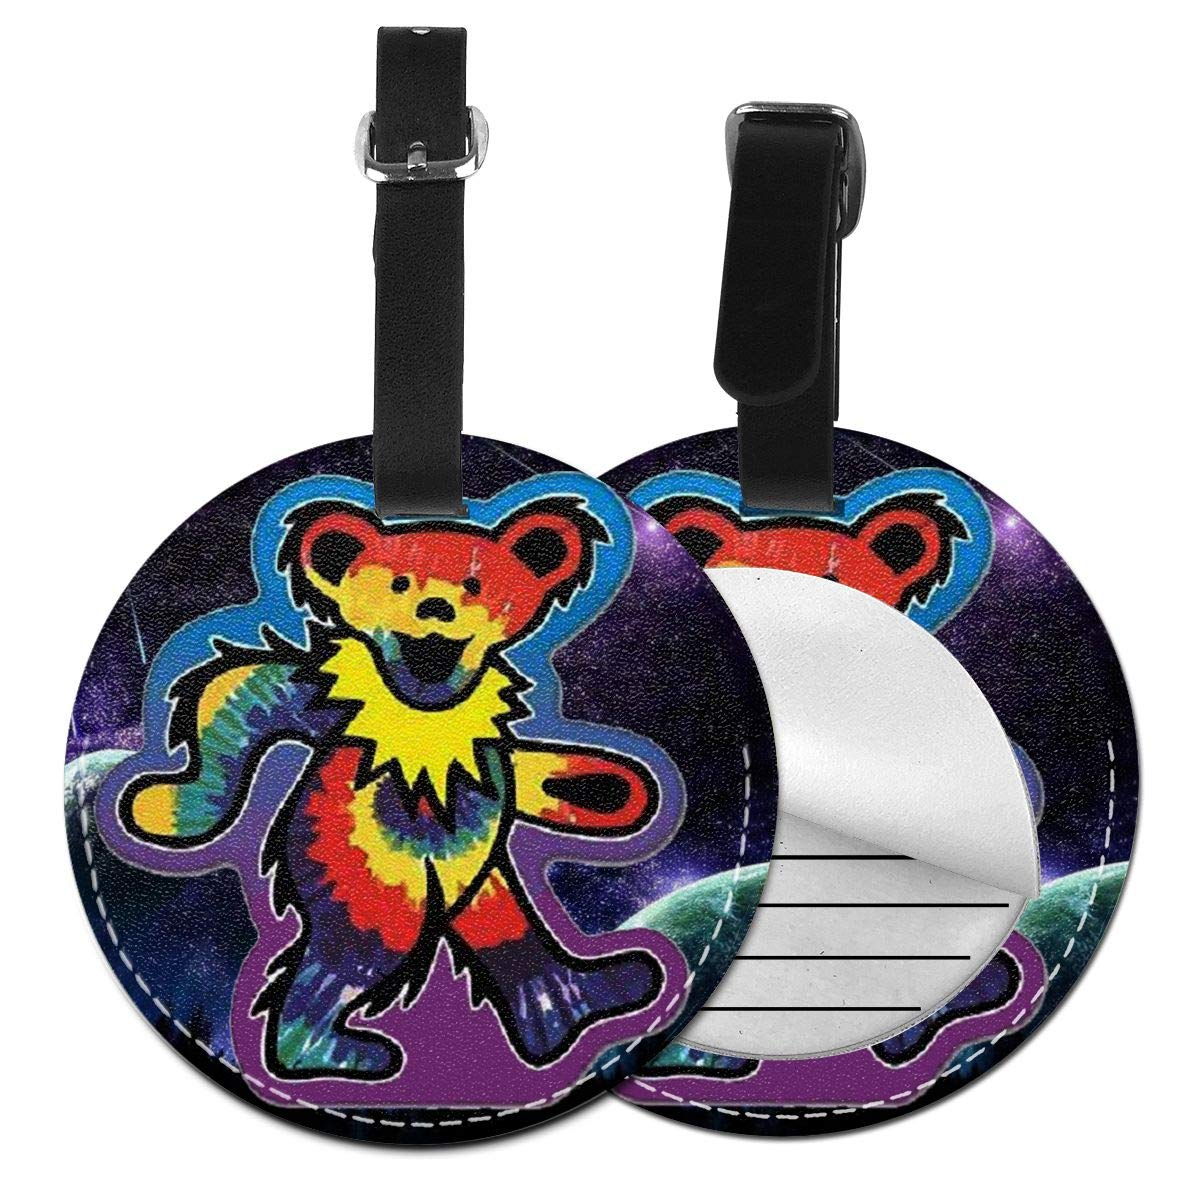 Free-2 Tie Dye Dancing Bear Luggage Tag 3D Print Leather Travel Bag ID Card